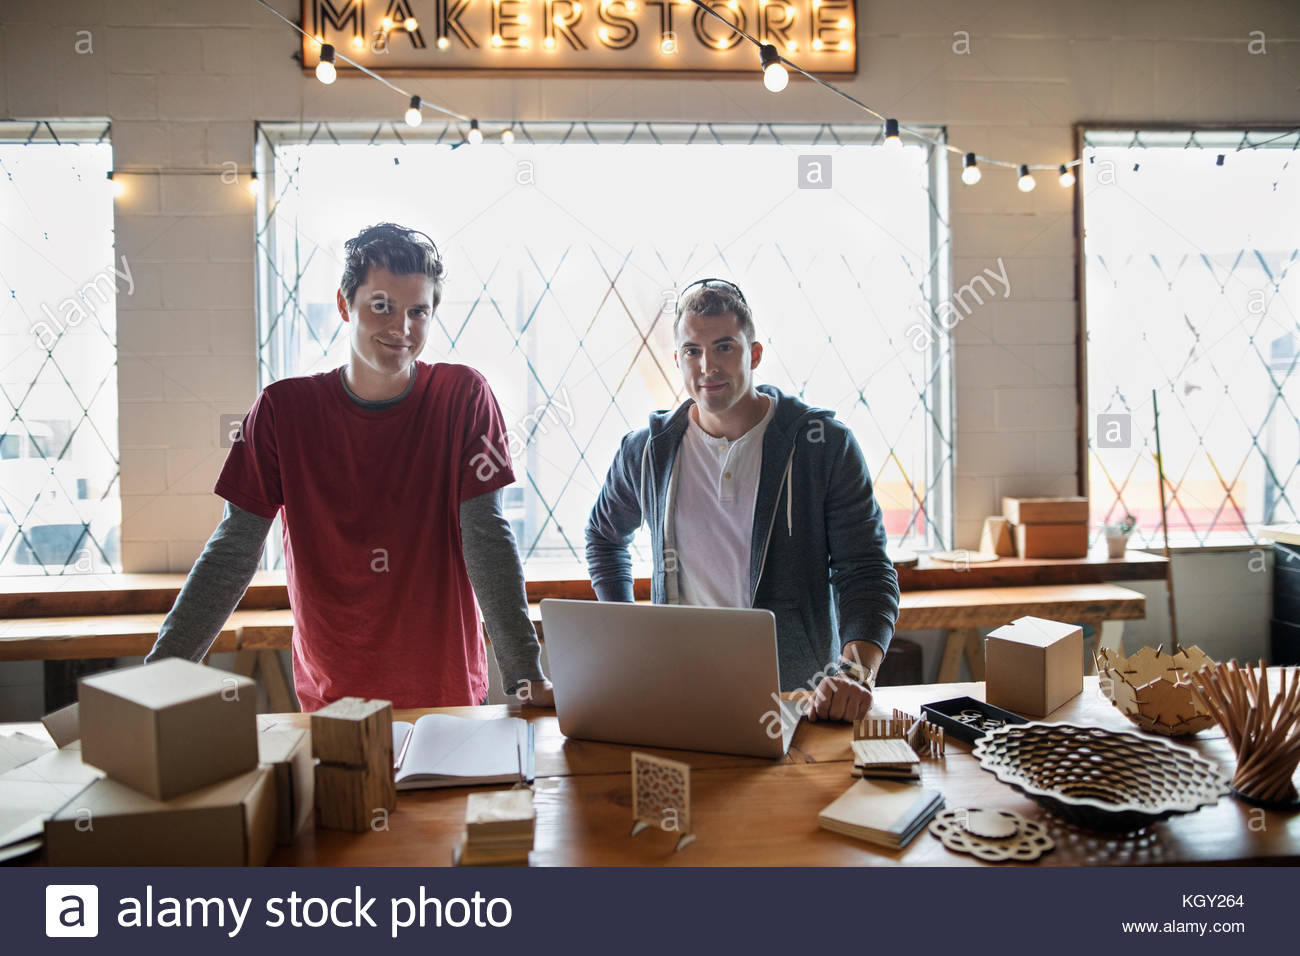 Portrait confident male entrepreneur craftsman working, packaging products in workshop - Stock Image